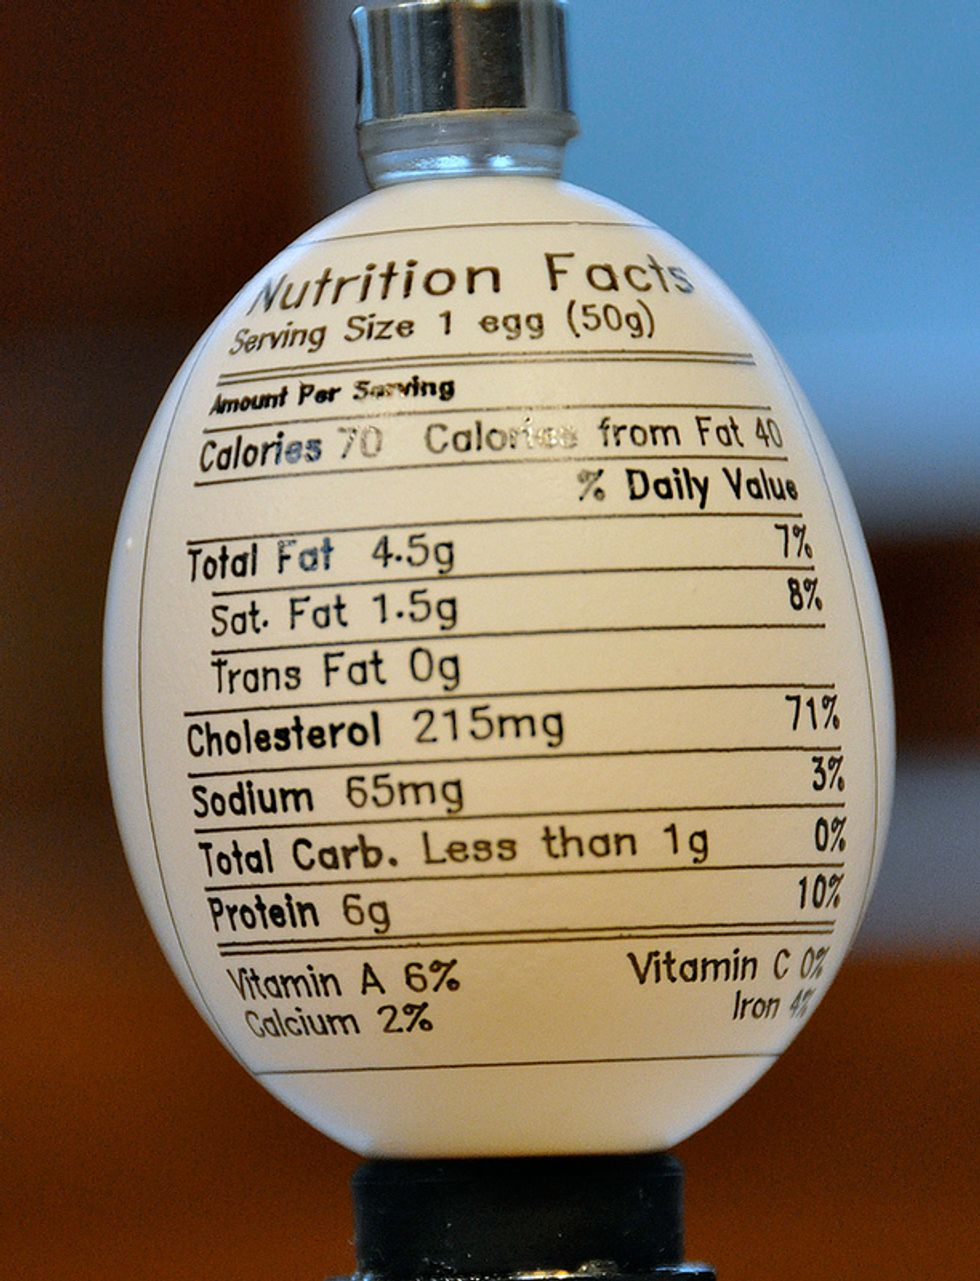 Printing Nutrition Labels on Food